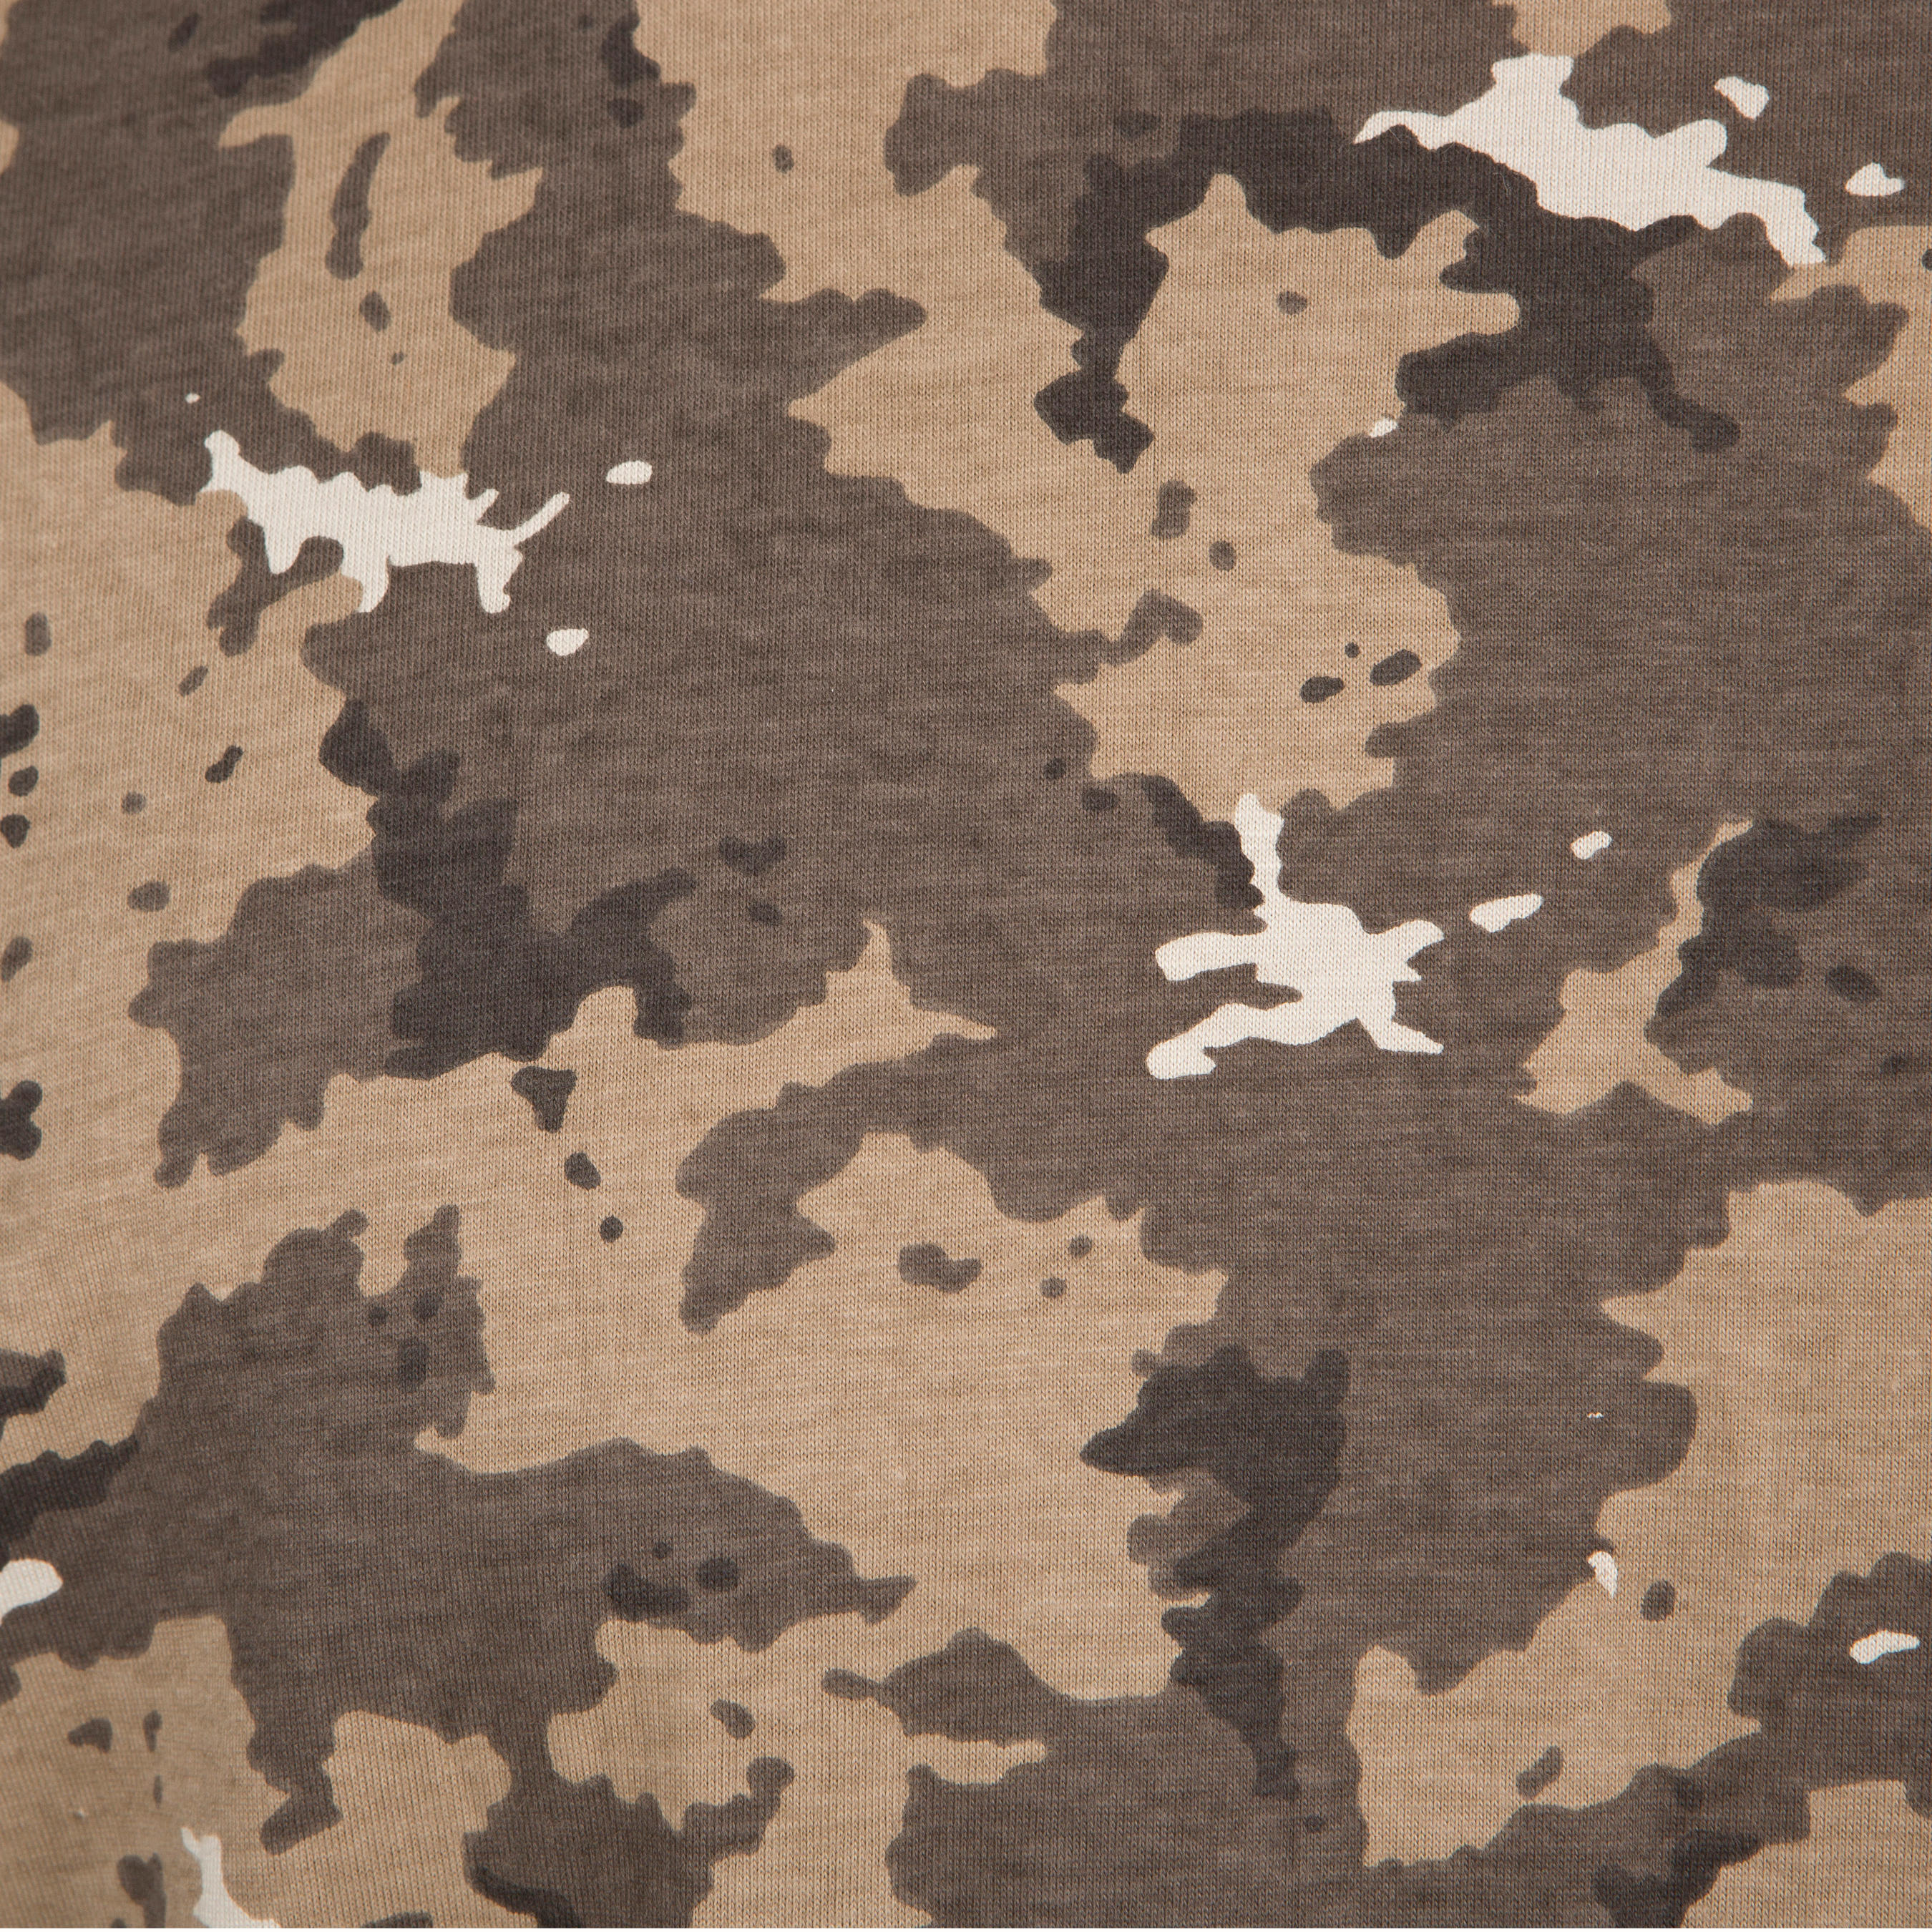 Men's T-Shirt SG-100 Camo Brown